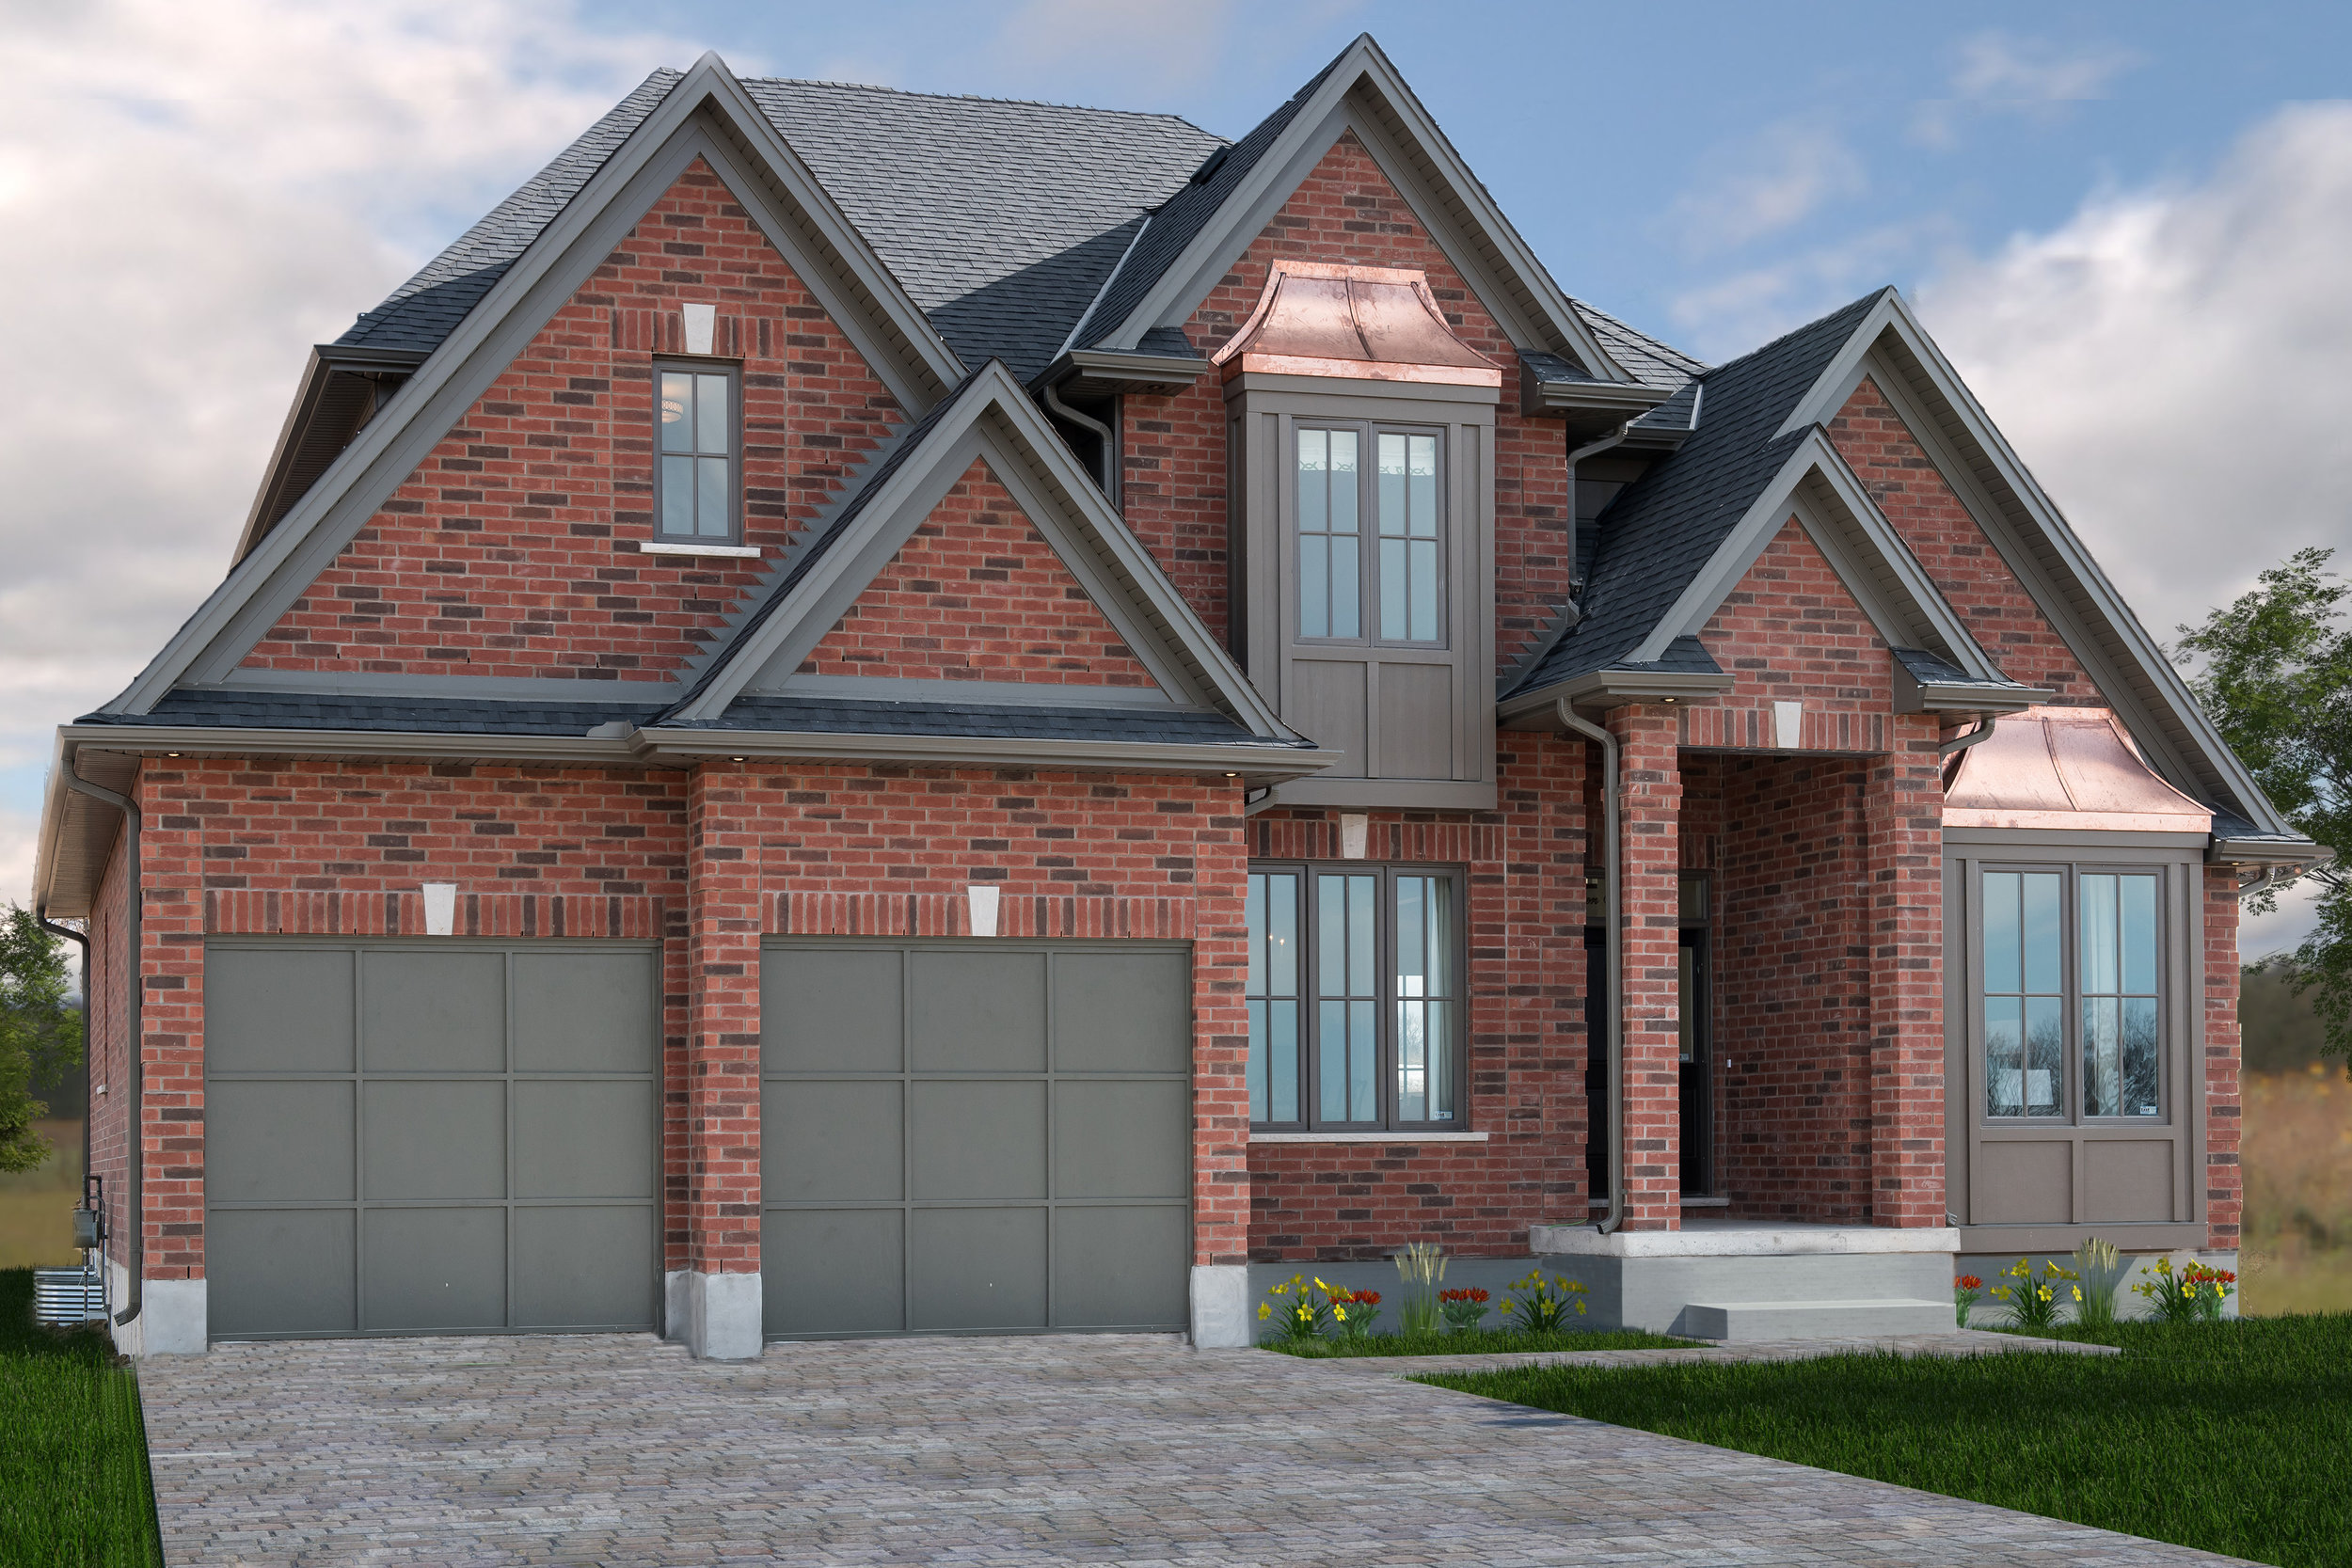 2015 - Westhaven Homes